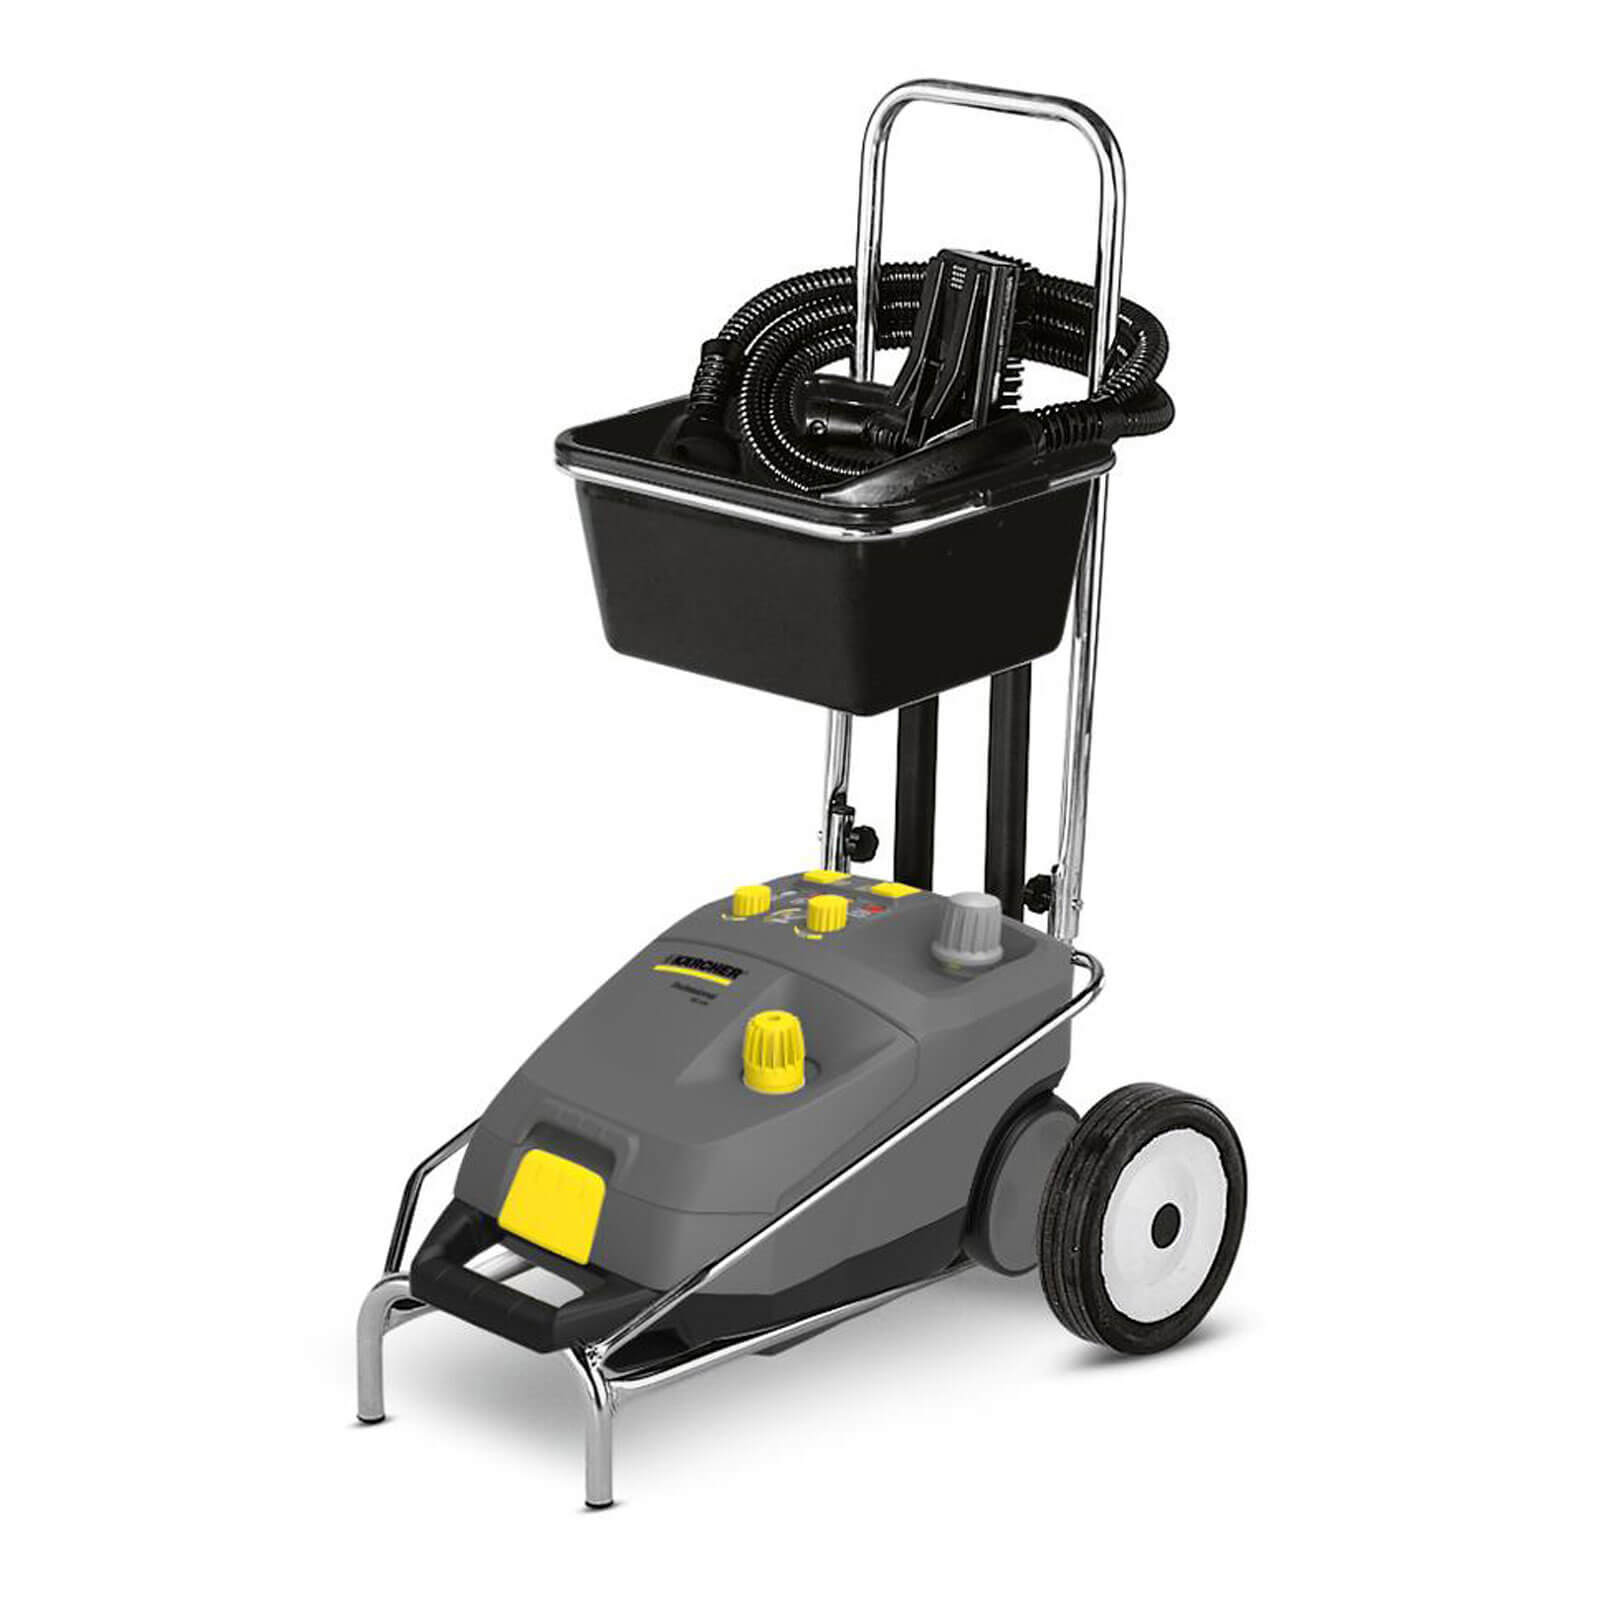 Karcher Trolley Cart for DE 4002 & SG 44 Steam Cleaners